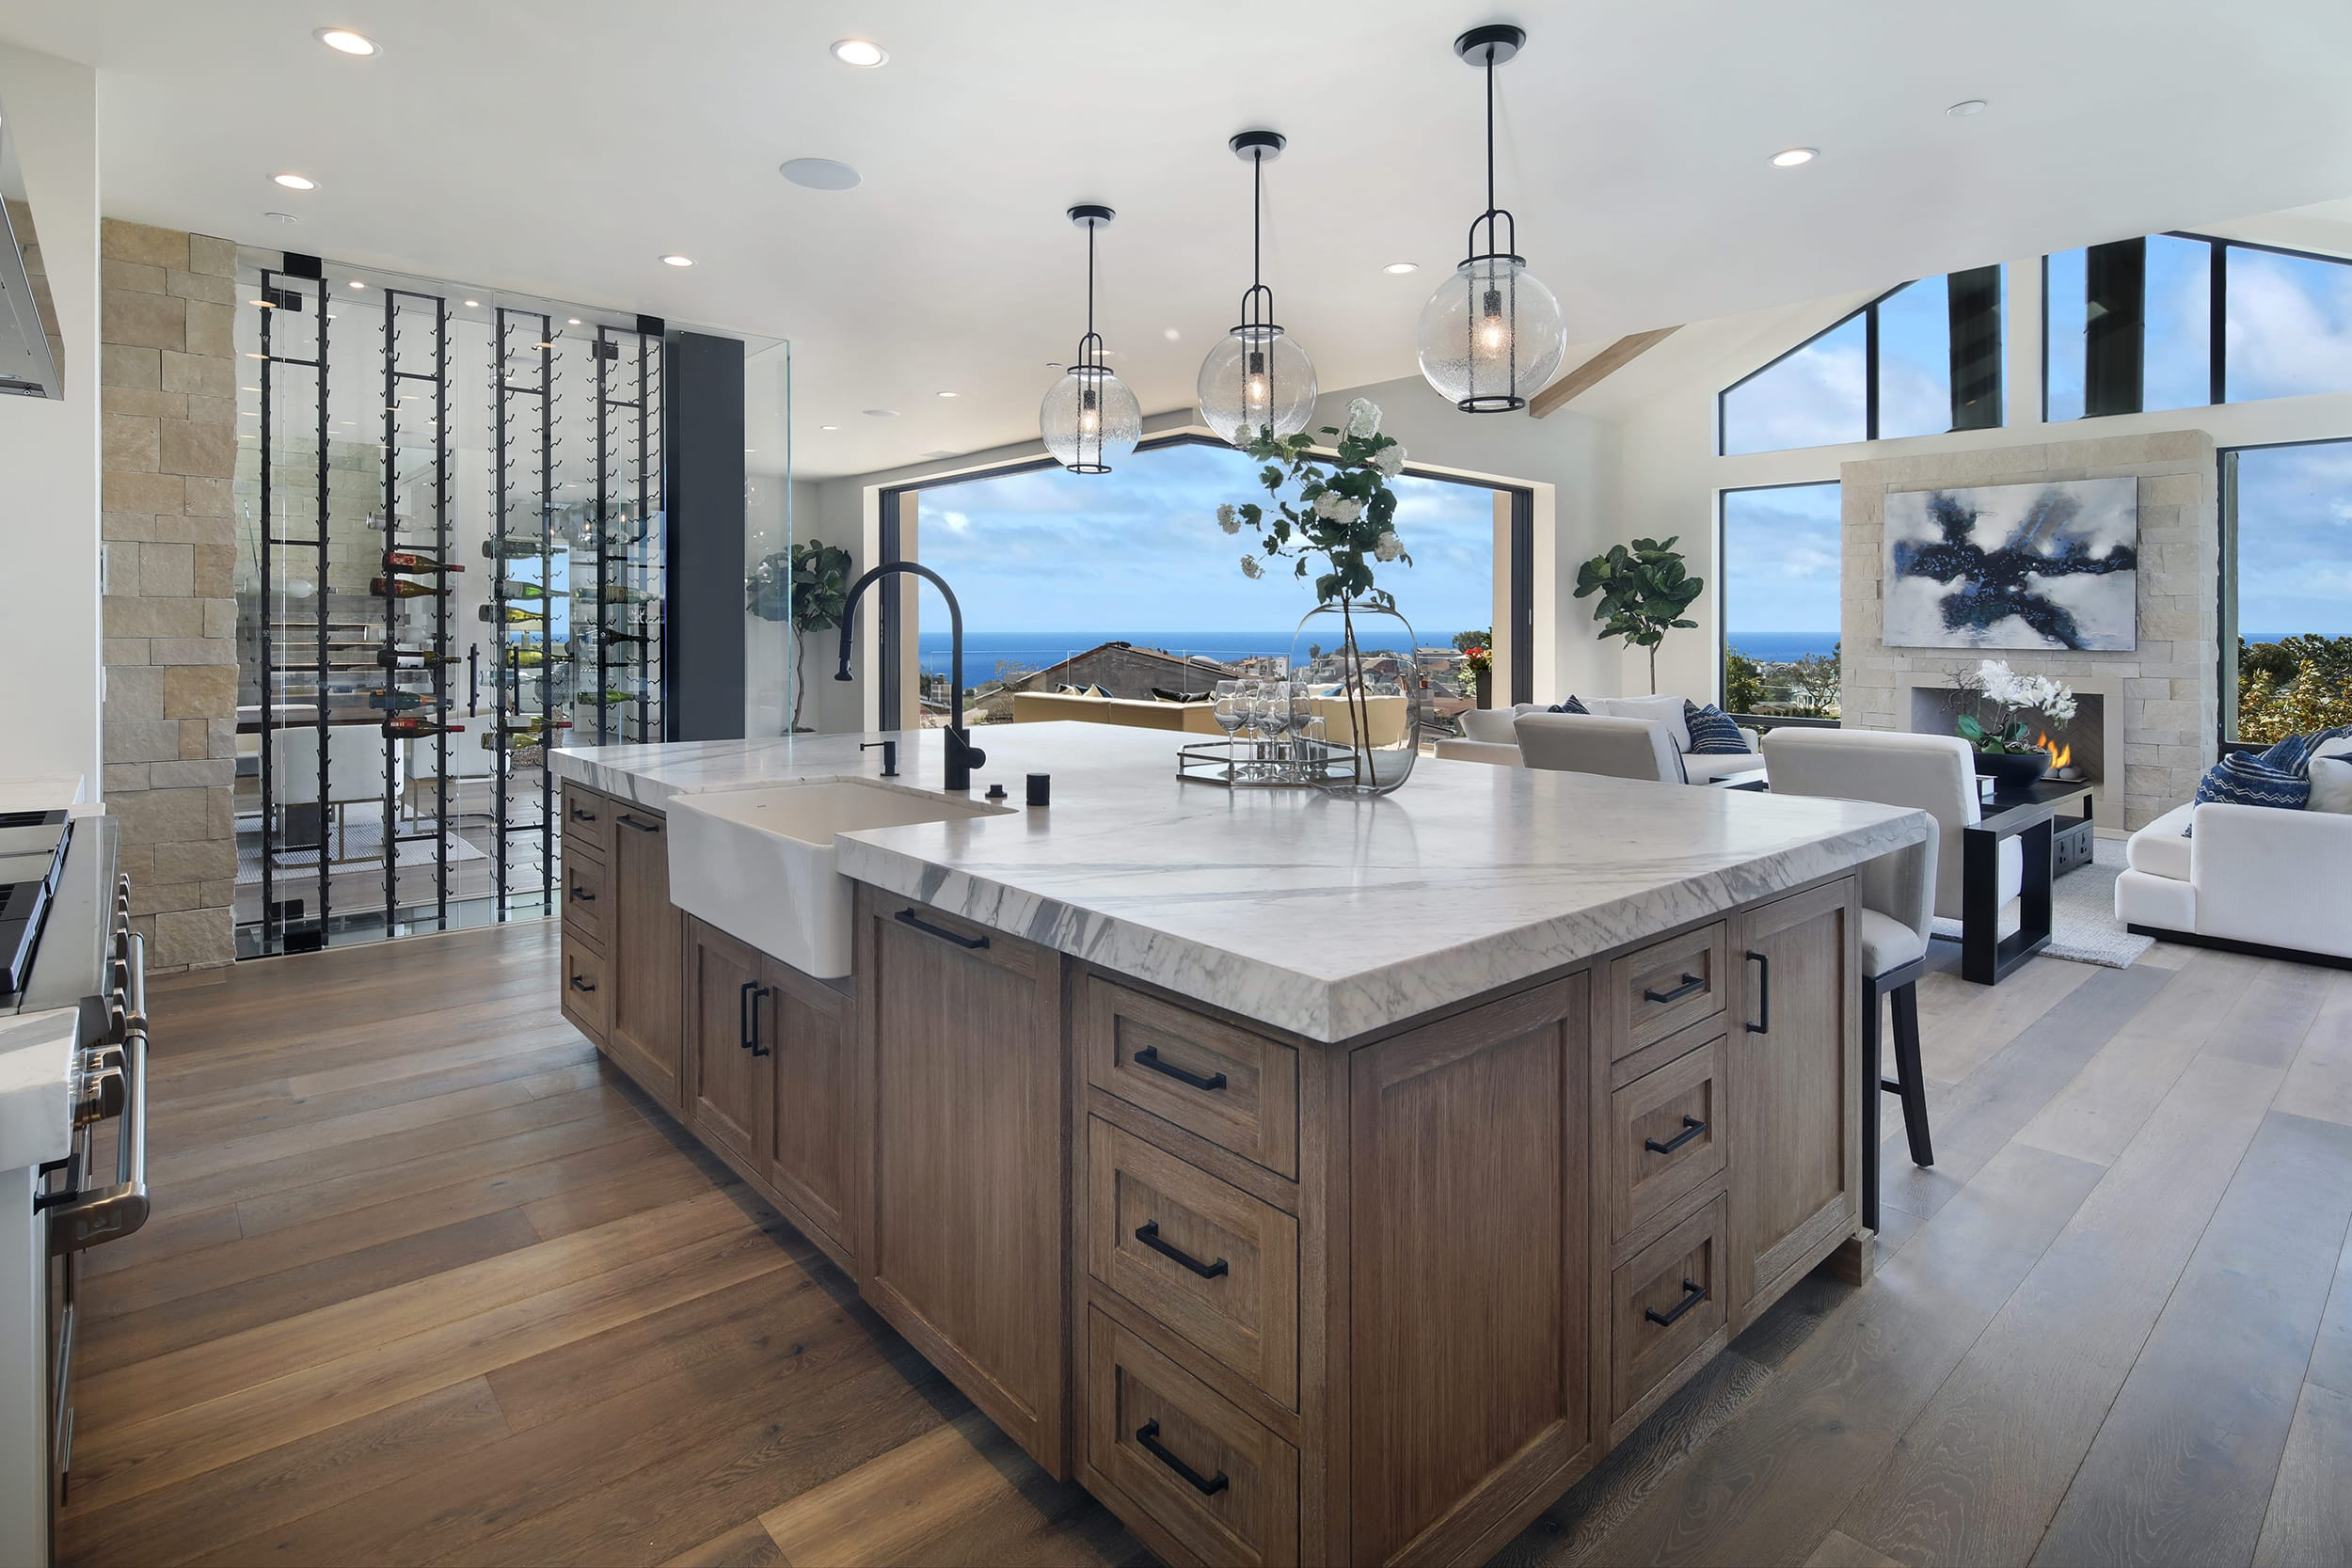 Top 9 Kitchen Design Trends You Will Be Seeing Everywhere ...